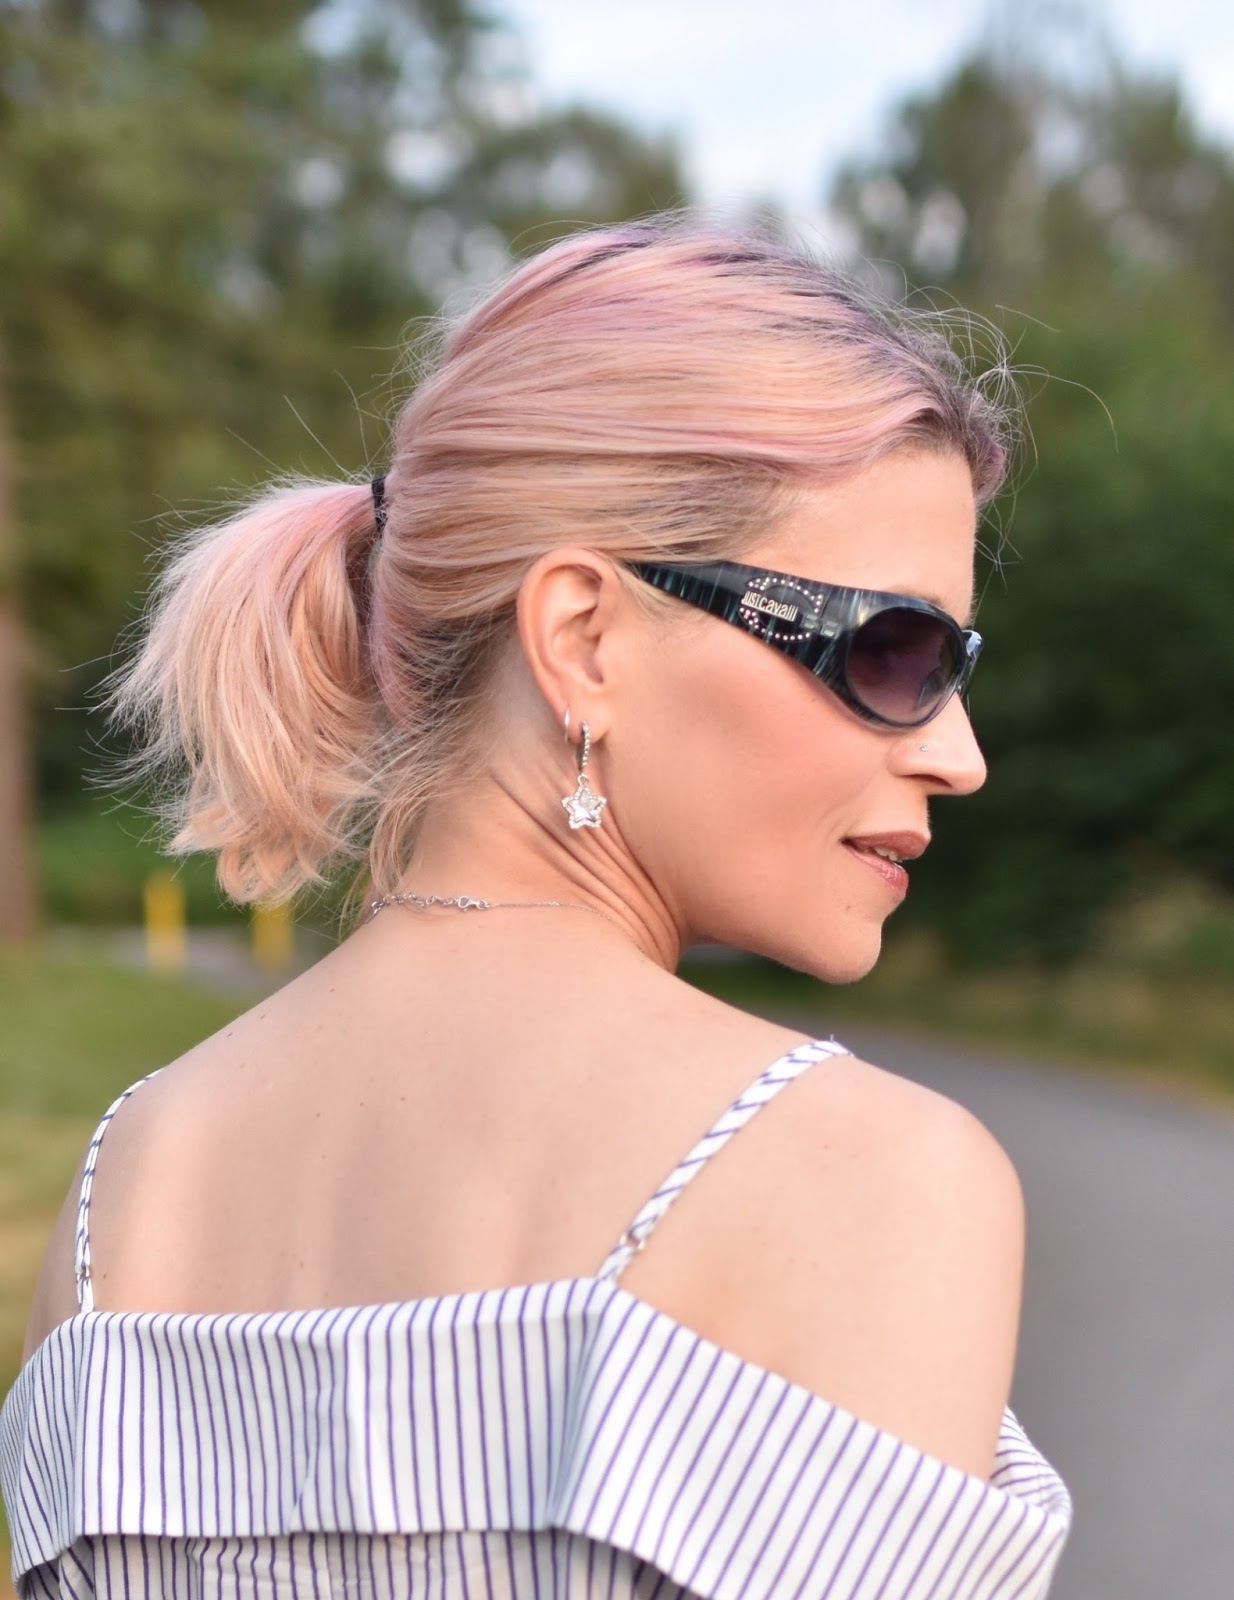 Monika Faulkner personal style inspiration - off-the-shoulder striped shirt, Just Cavalli sunglasses, pink hair